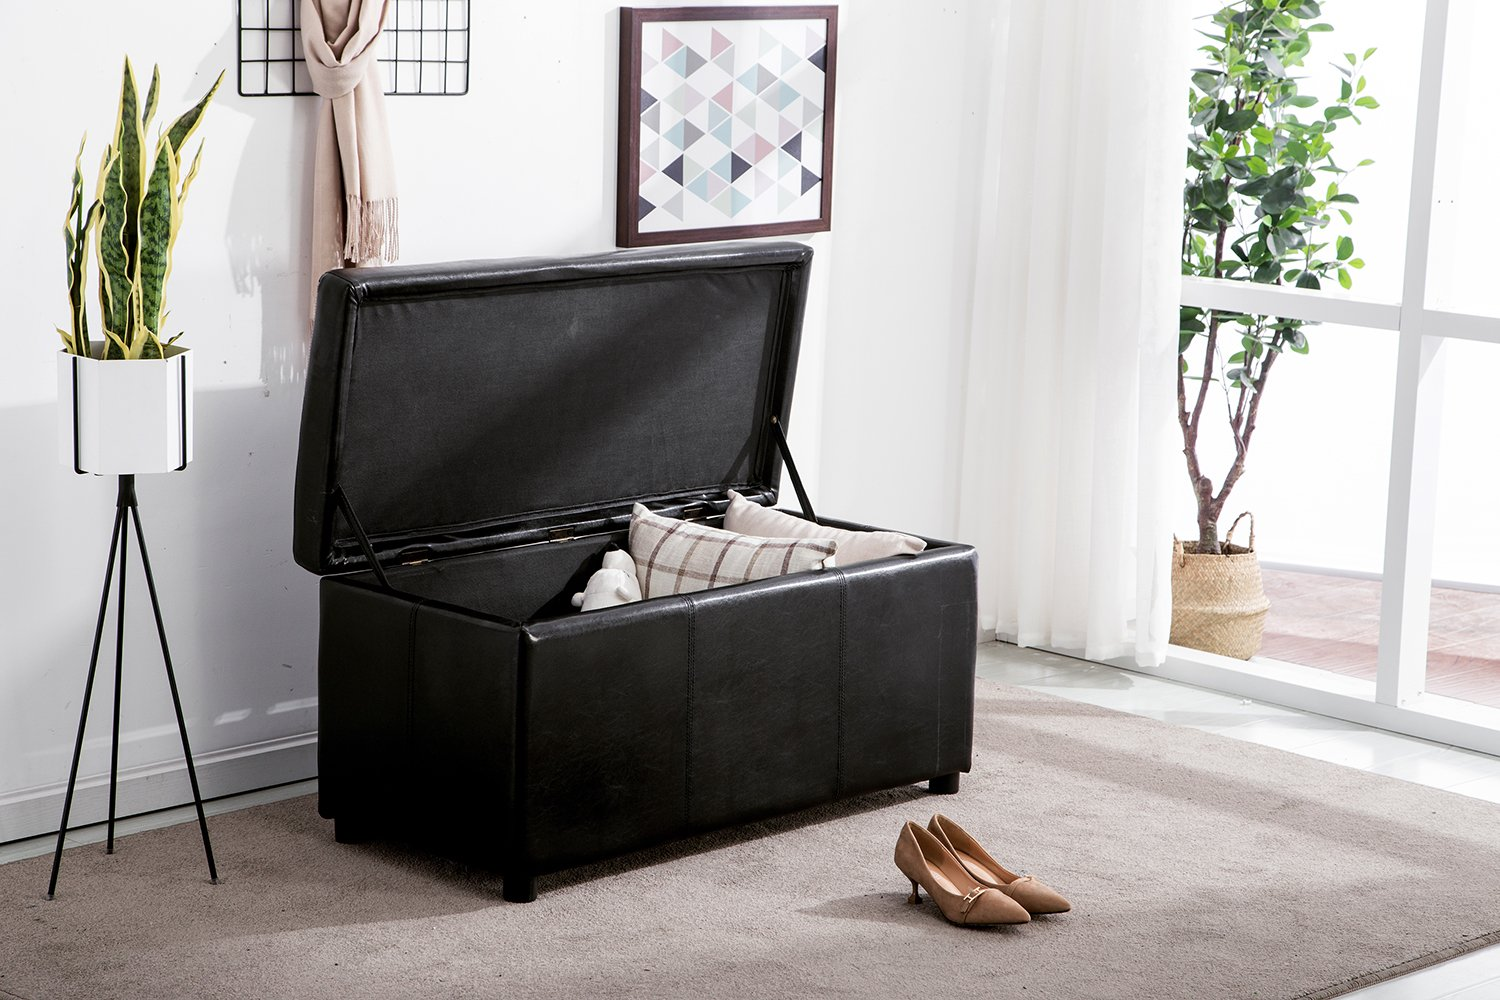 MCombo Storage Ottoman Classical 4pc Folding Faux Leather, Shoe Bench, Bench, Foot Rest Black